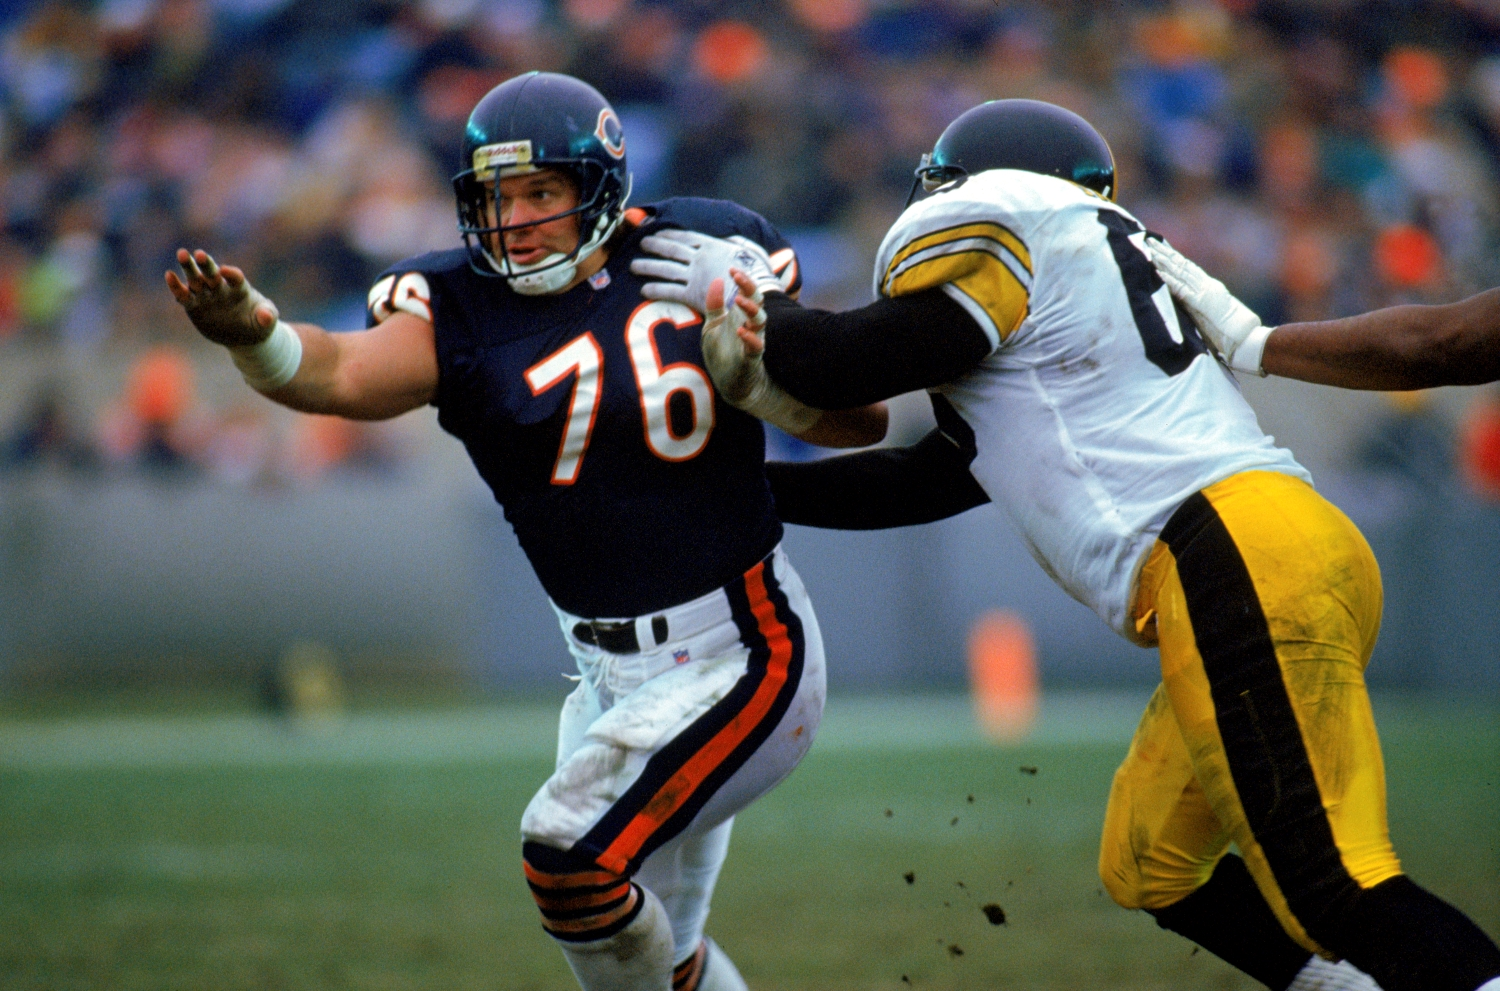 Chicago Bears defensive lineman Steve McMichael runs past a Pittsburgh Steelers player.